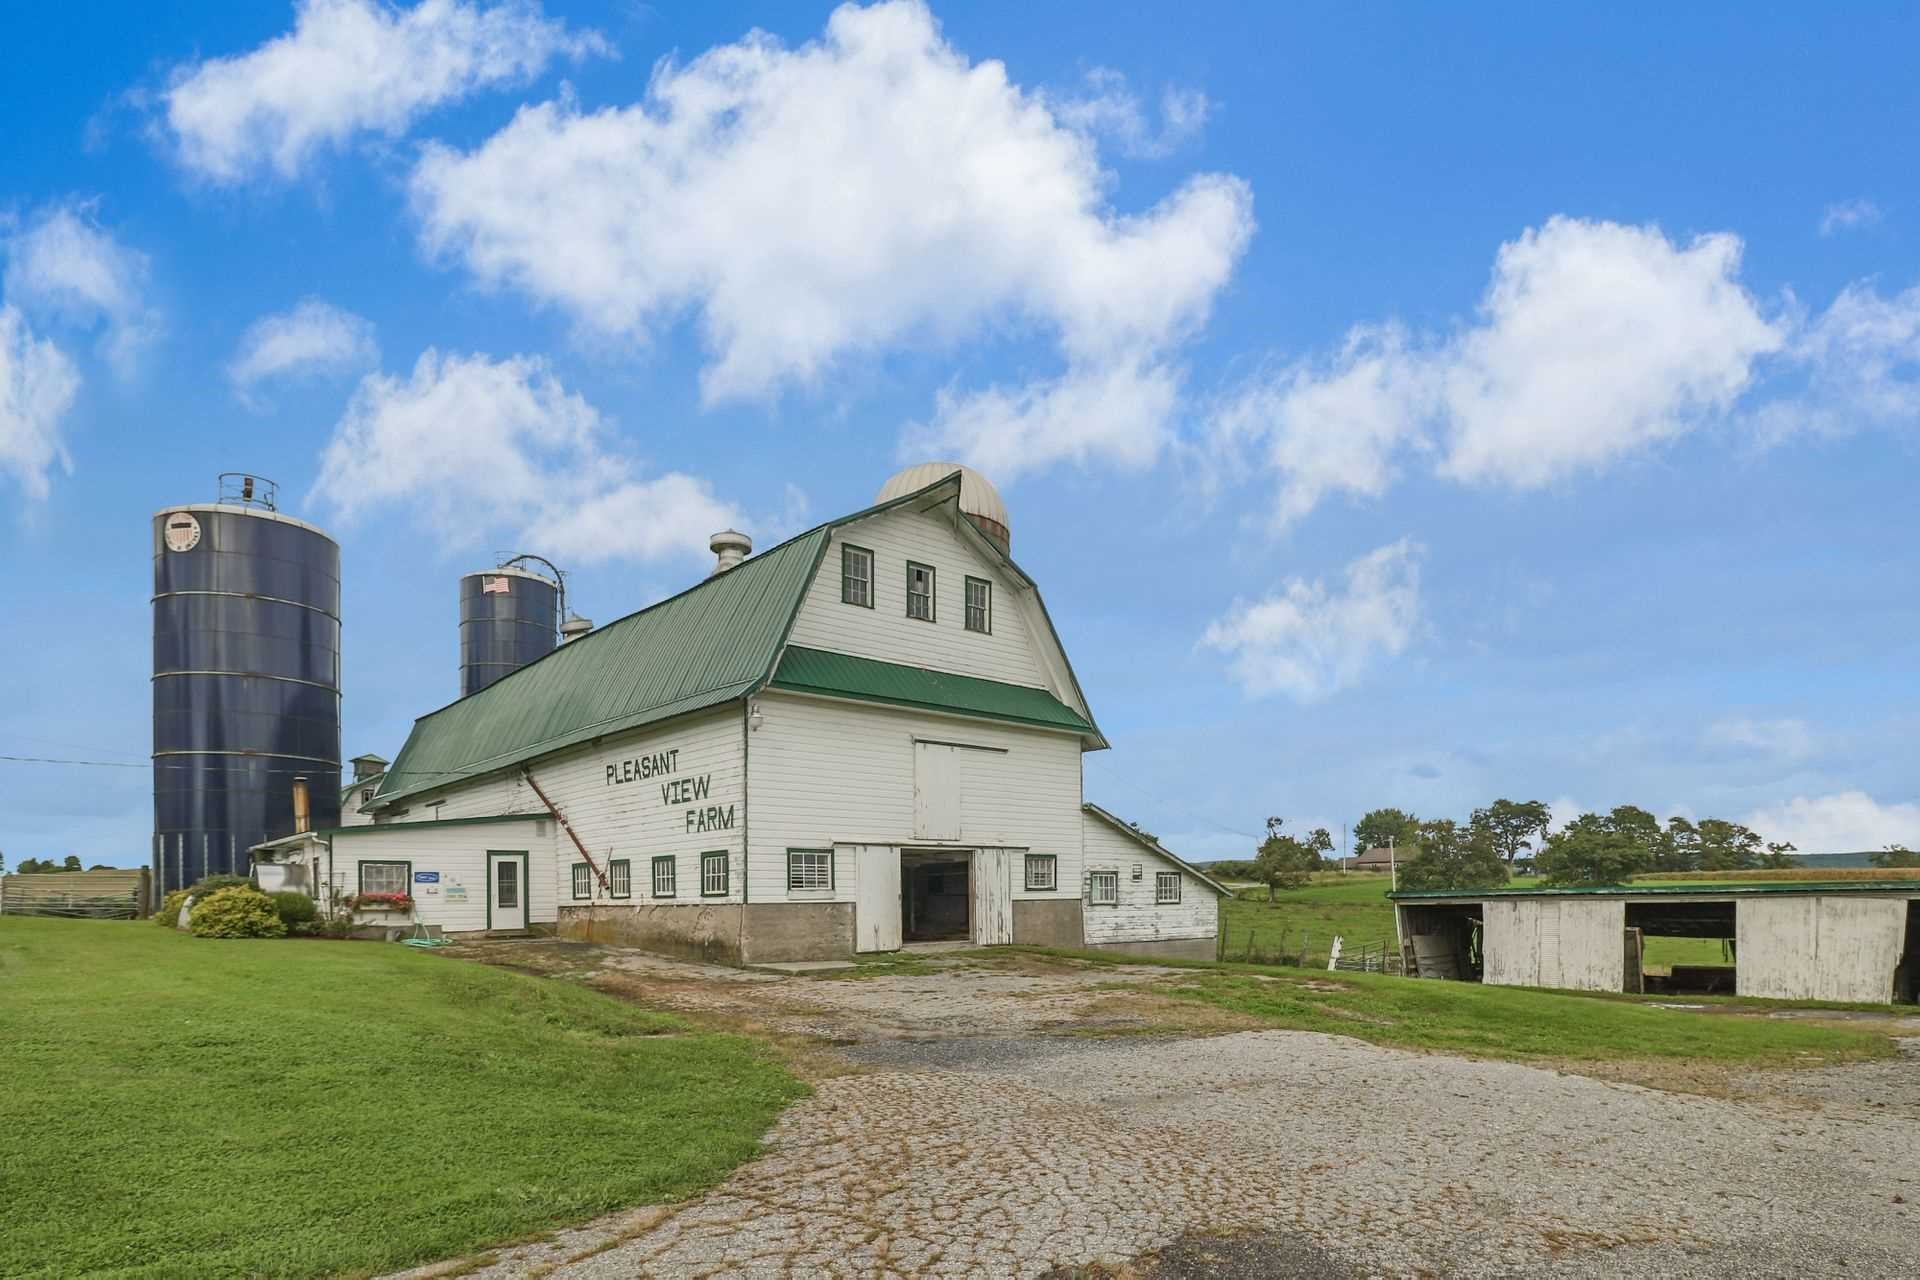 130 Pulver Rd North East Ny 12546 Listing 375610 By